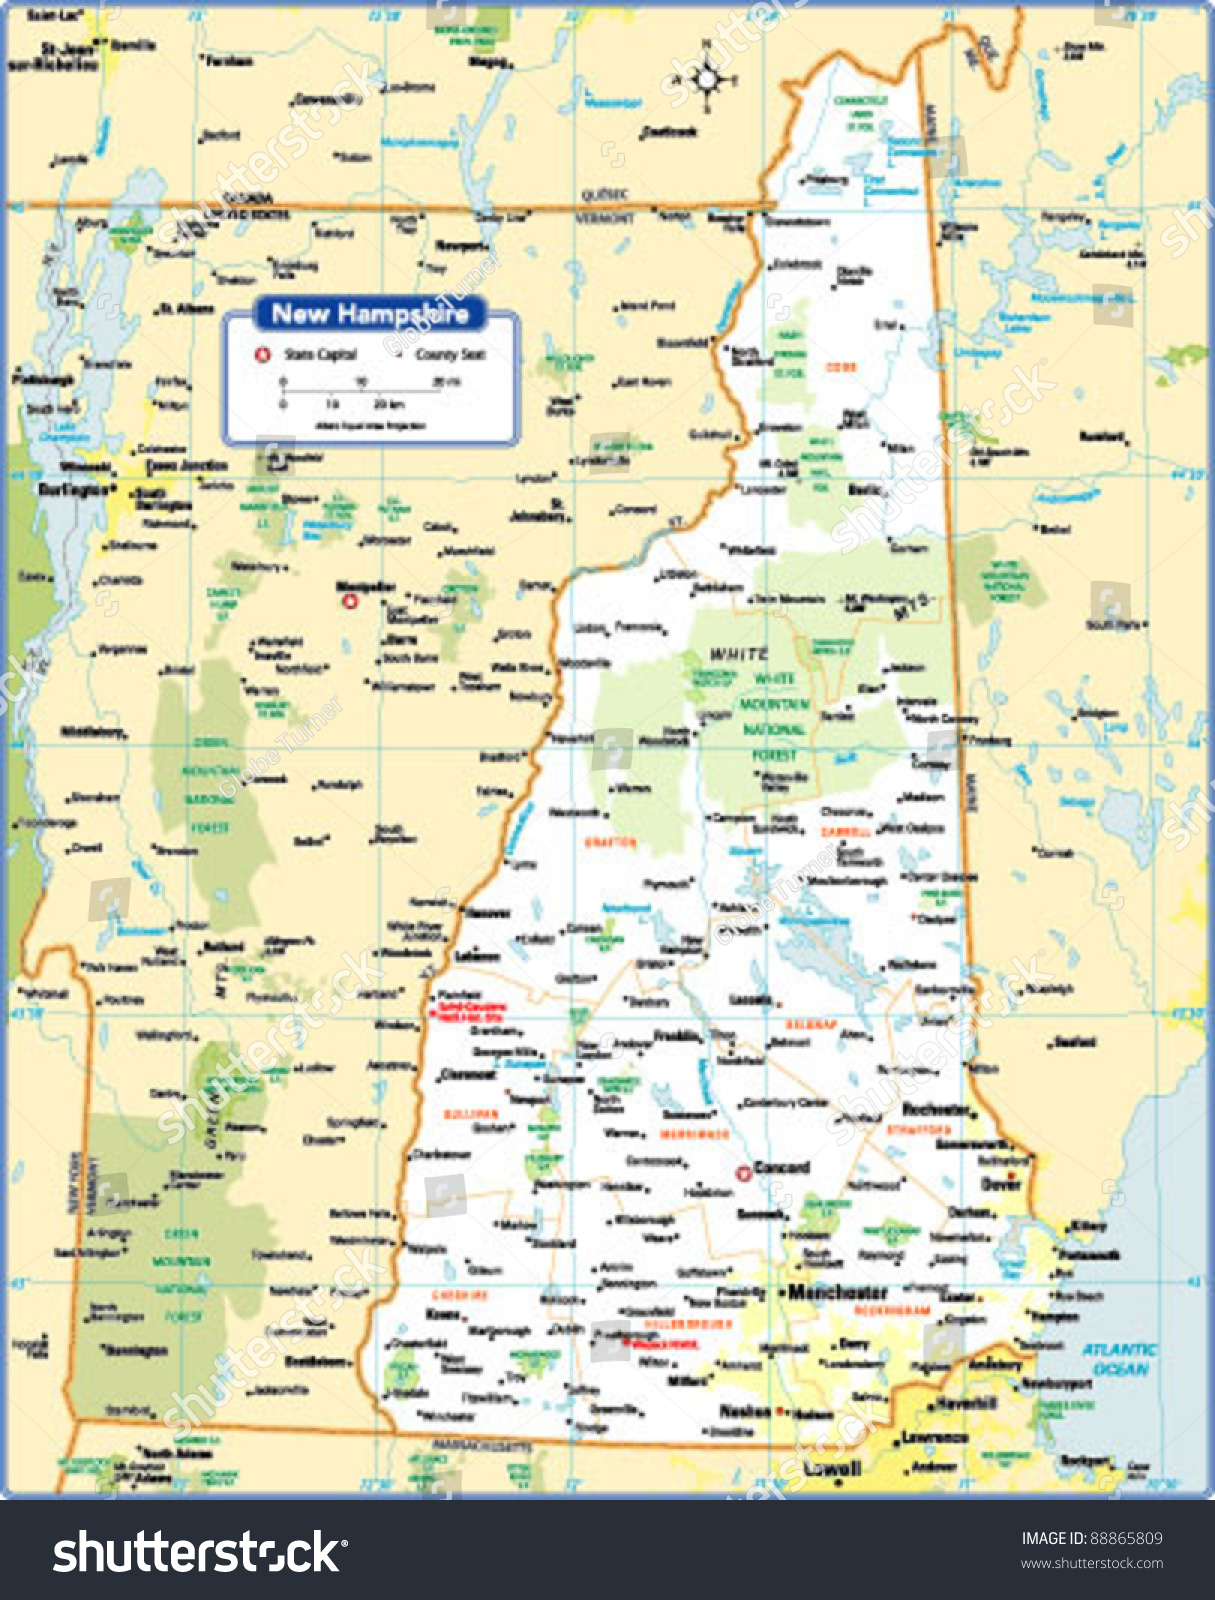 New Hampshire State Map Stock Vector Illustration